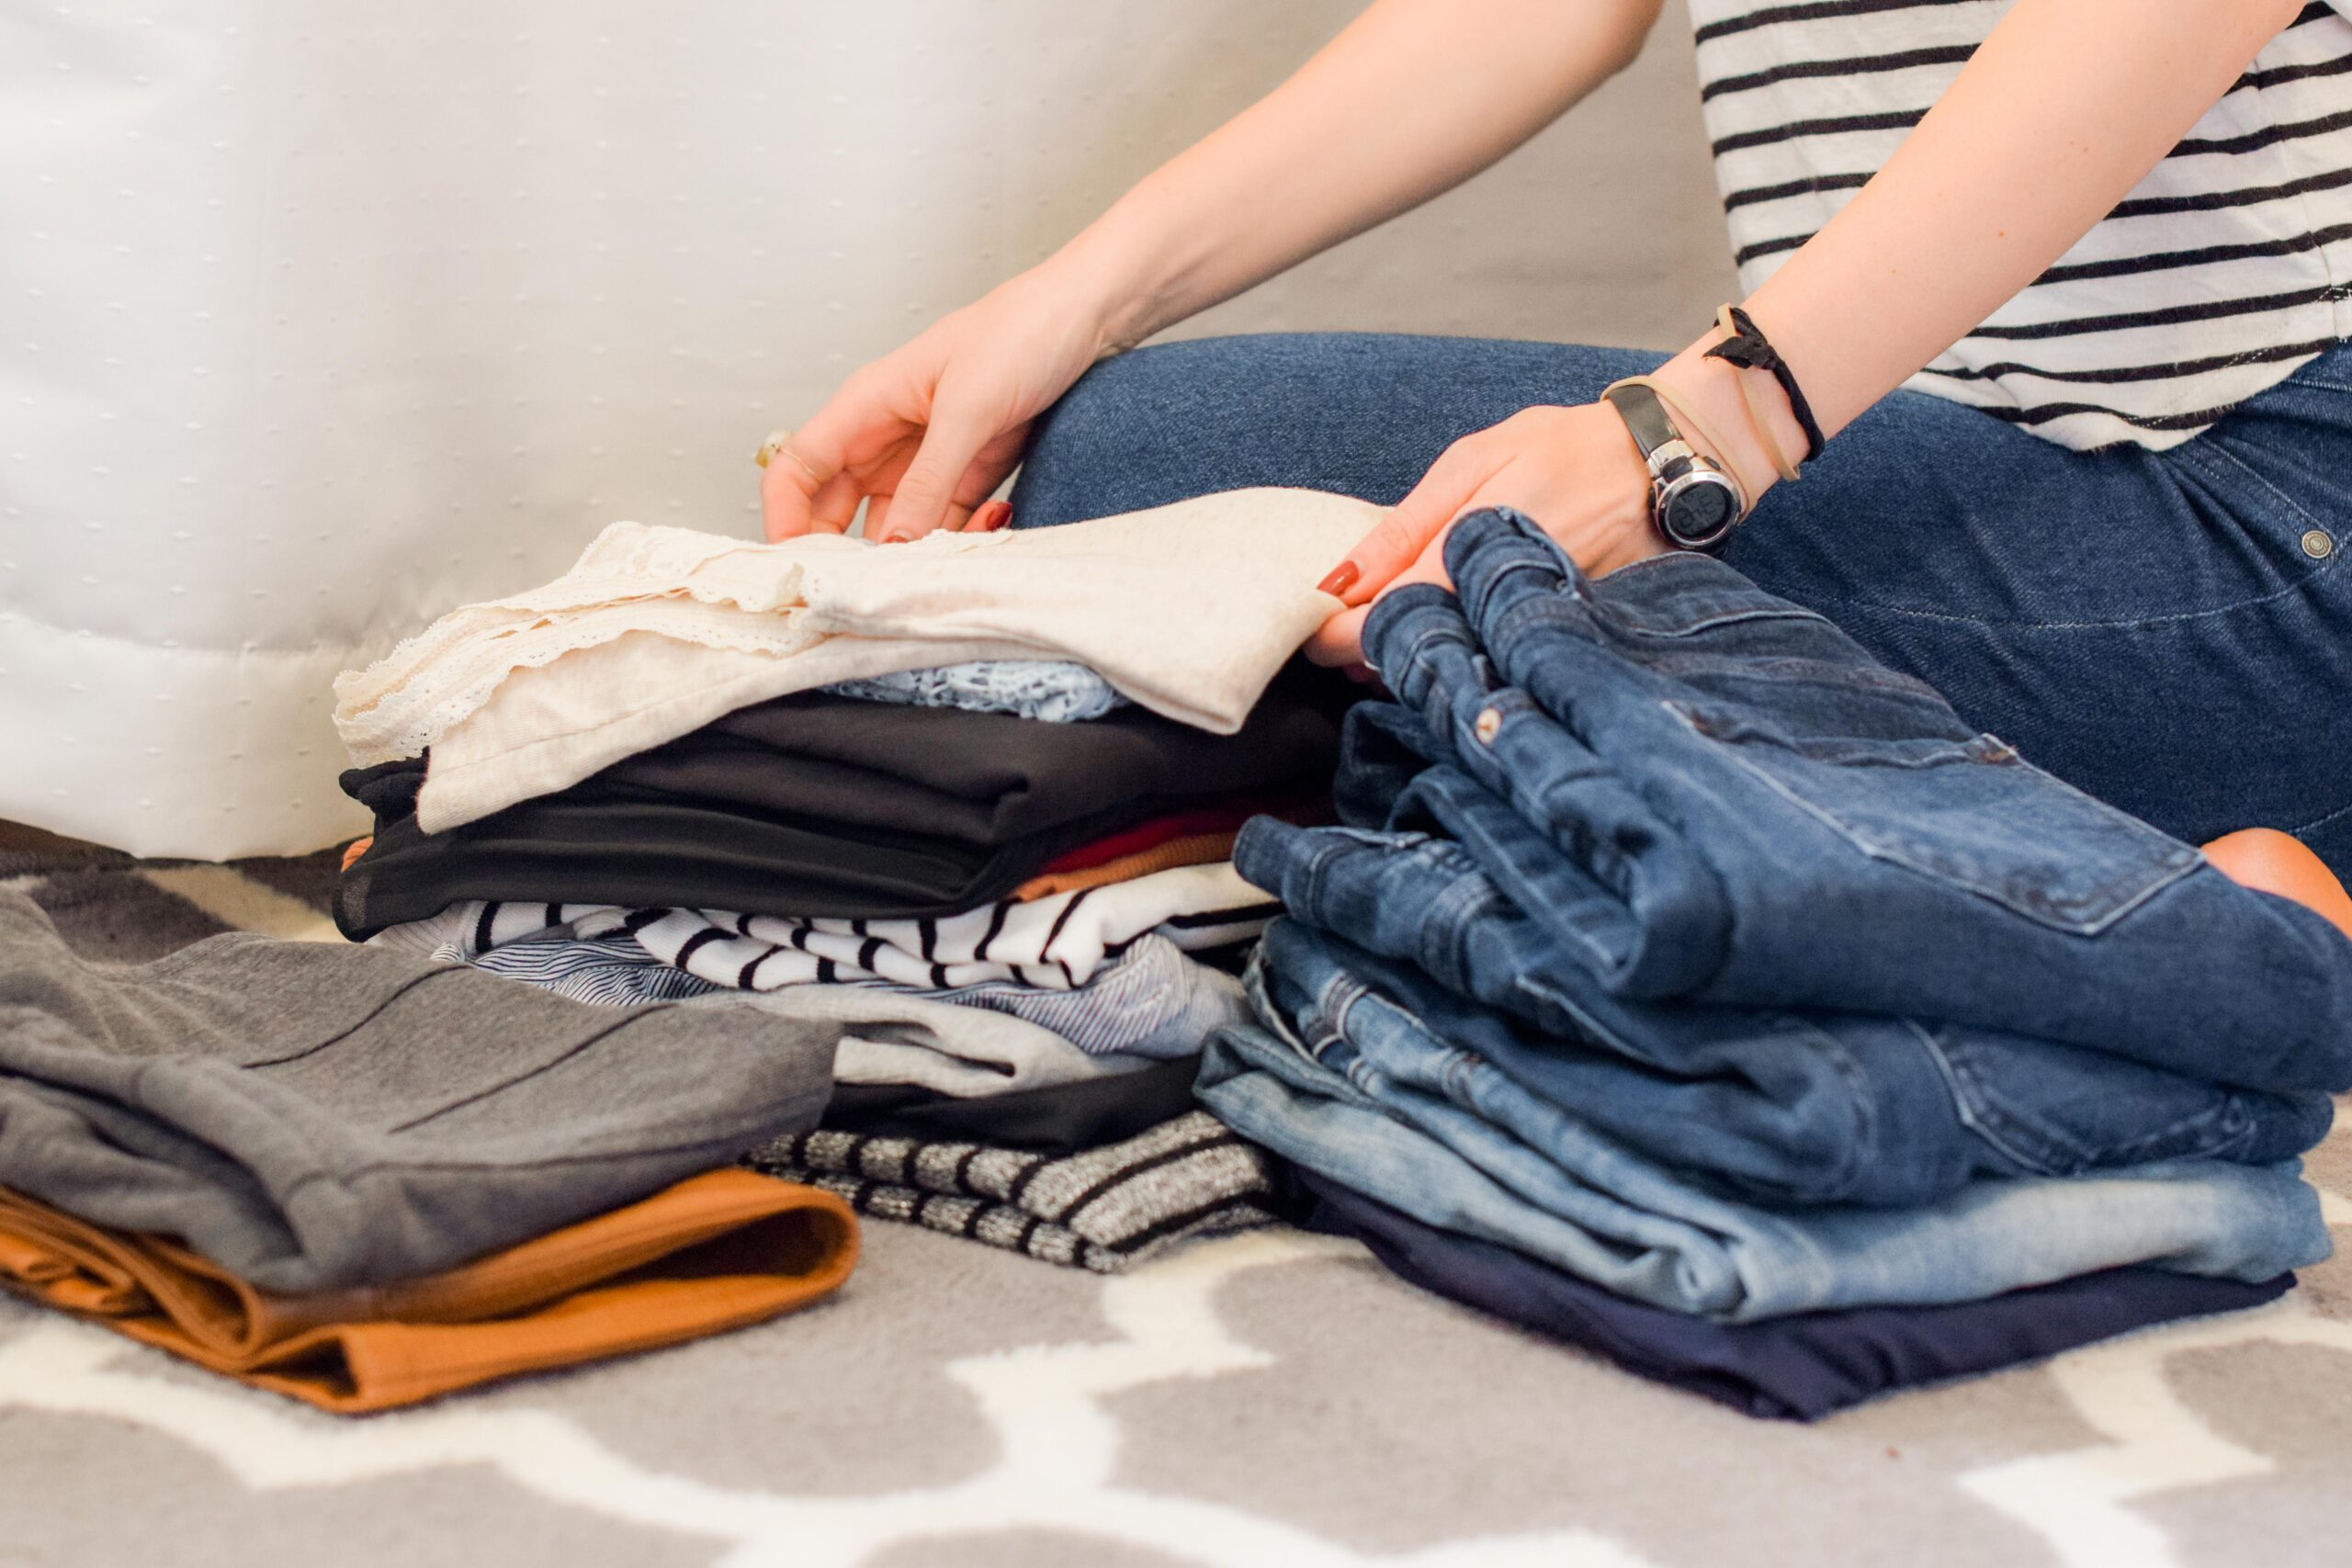 Home Hacks: 5 Tips to Organize Your Bedroom